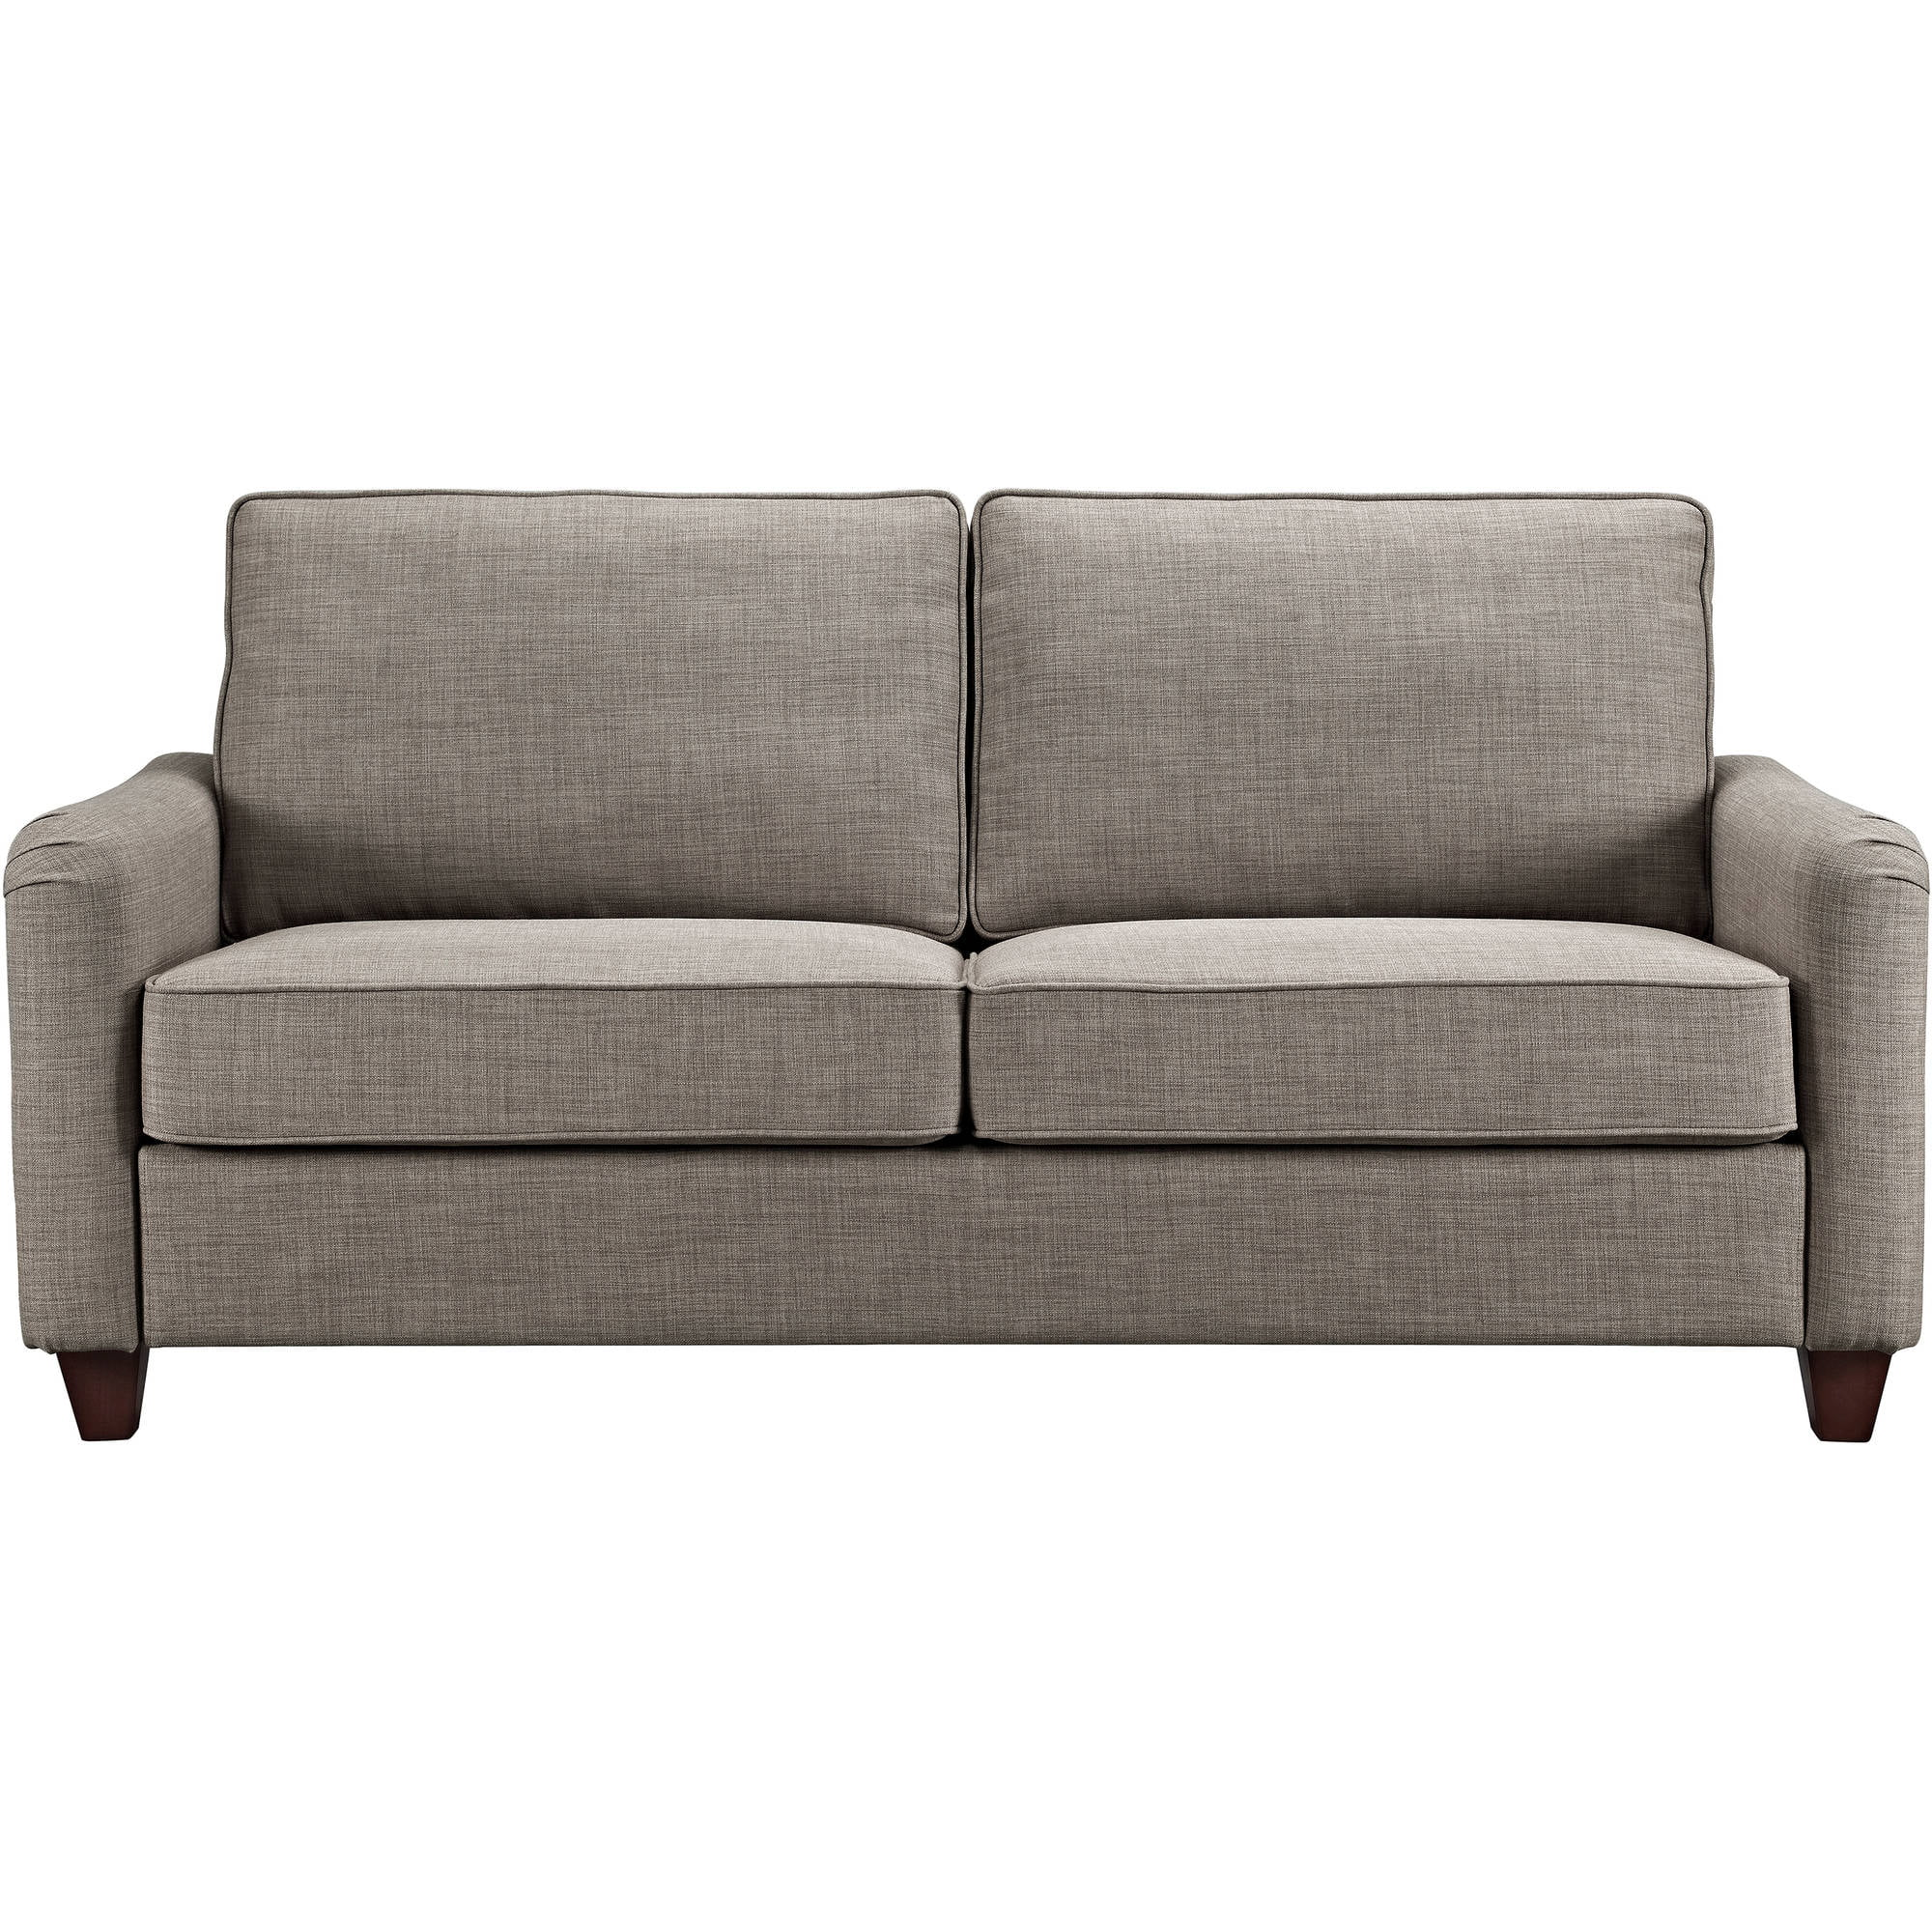 Superieur Sofas U0026 Couches